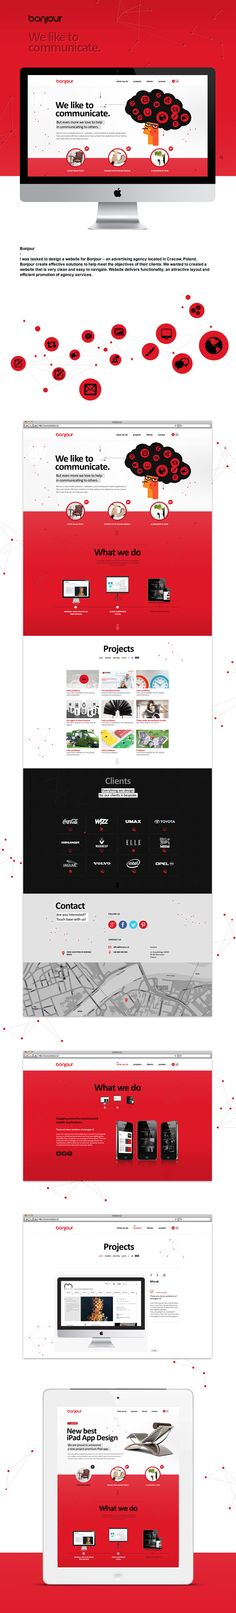 "Bonjour by Renata Cyganczuk, via Behance *** "" Bonjour create effective solutions to help meet the objectives of their clients. We wanted to created a website that is very clean and easy to navigate. Website delivers functionality, an attractive layout and efficient promotion of agency services. """